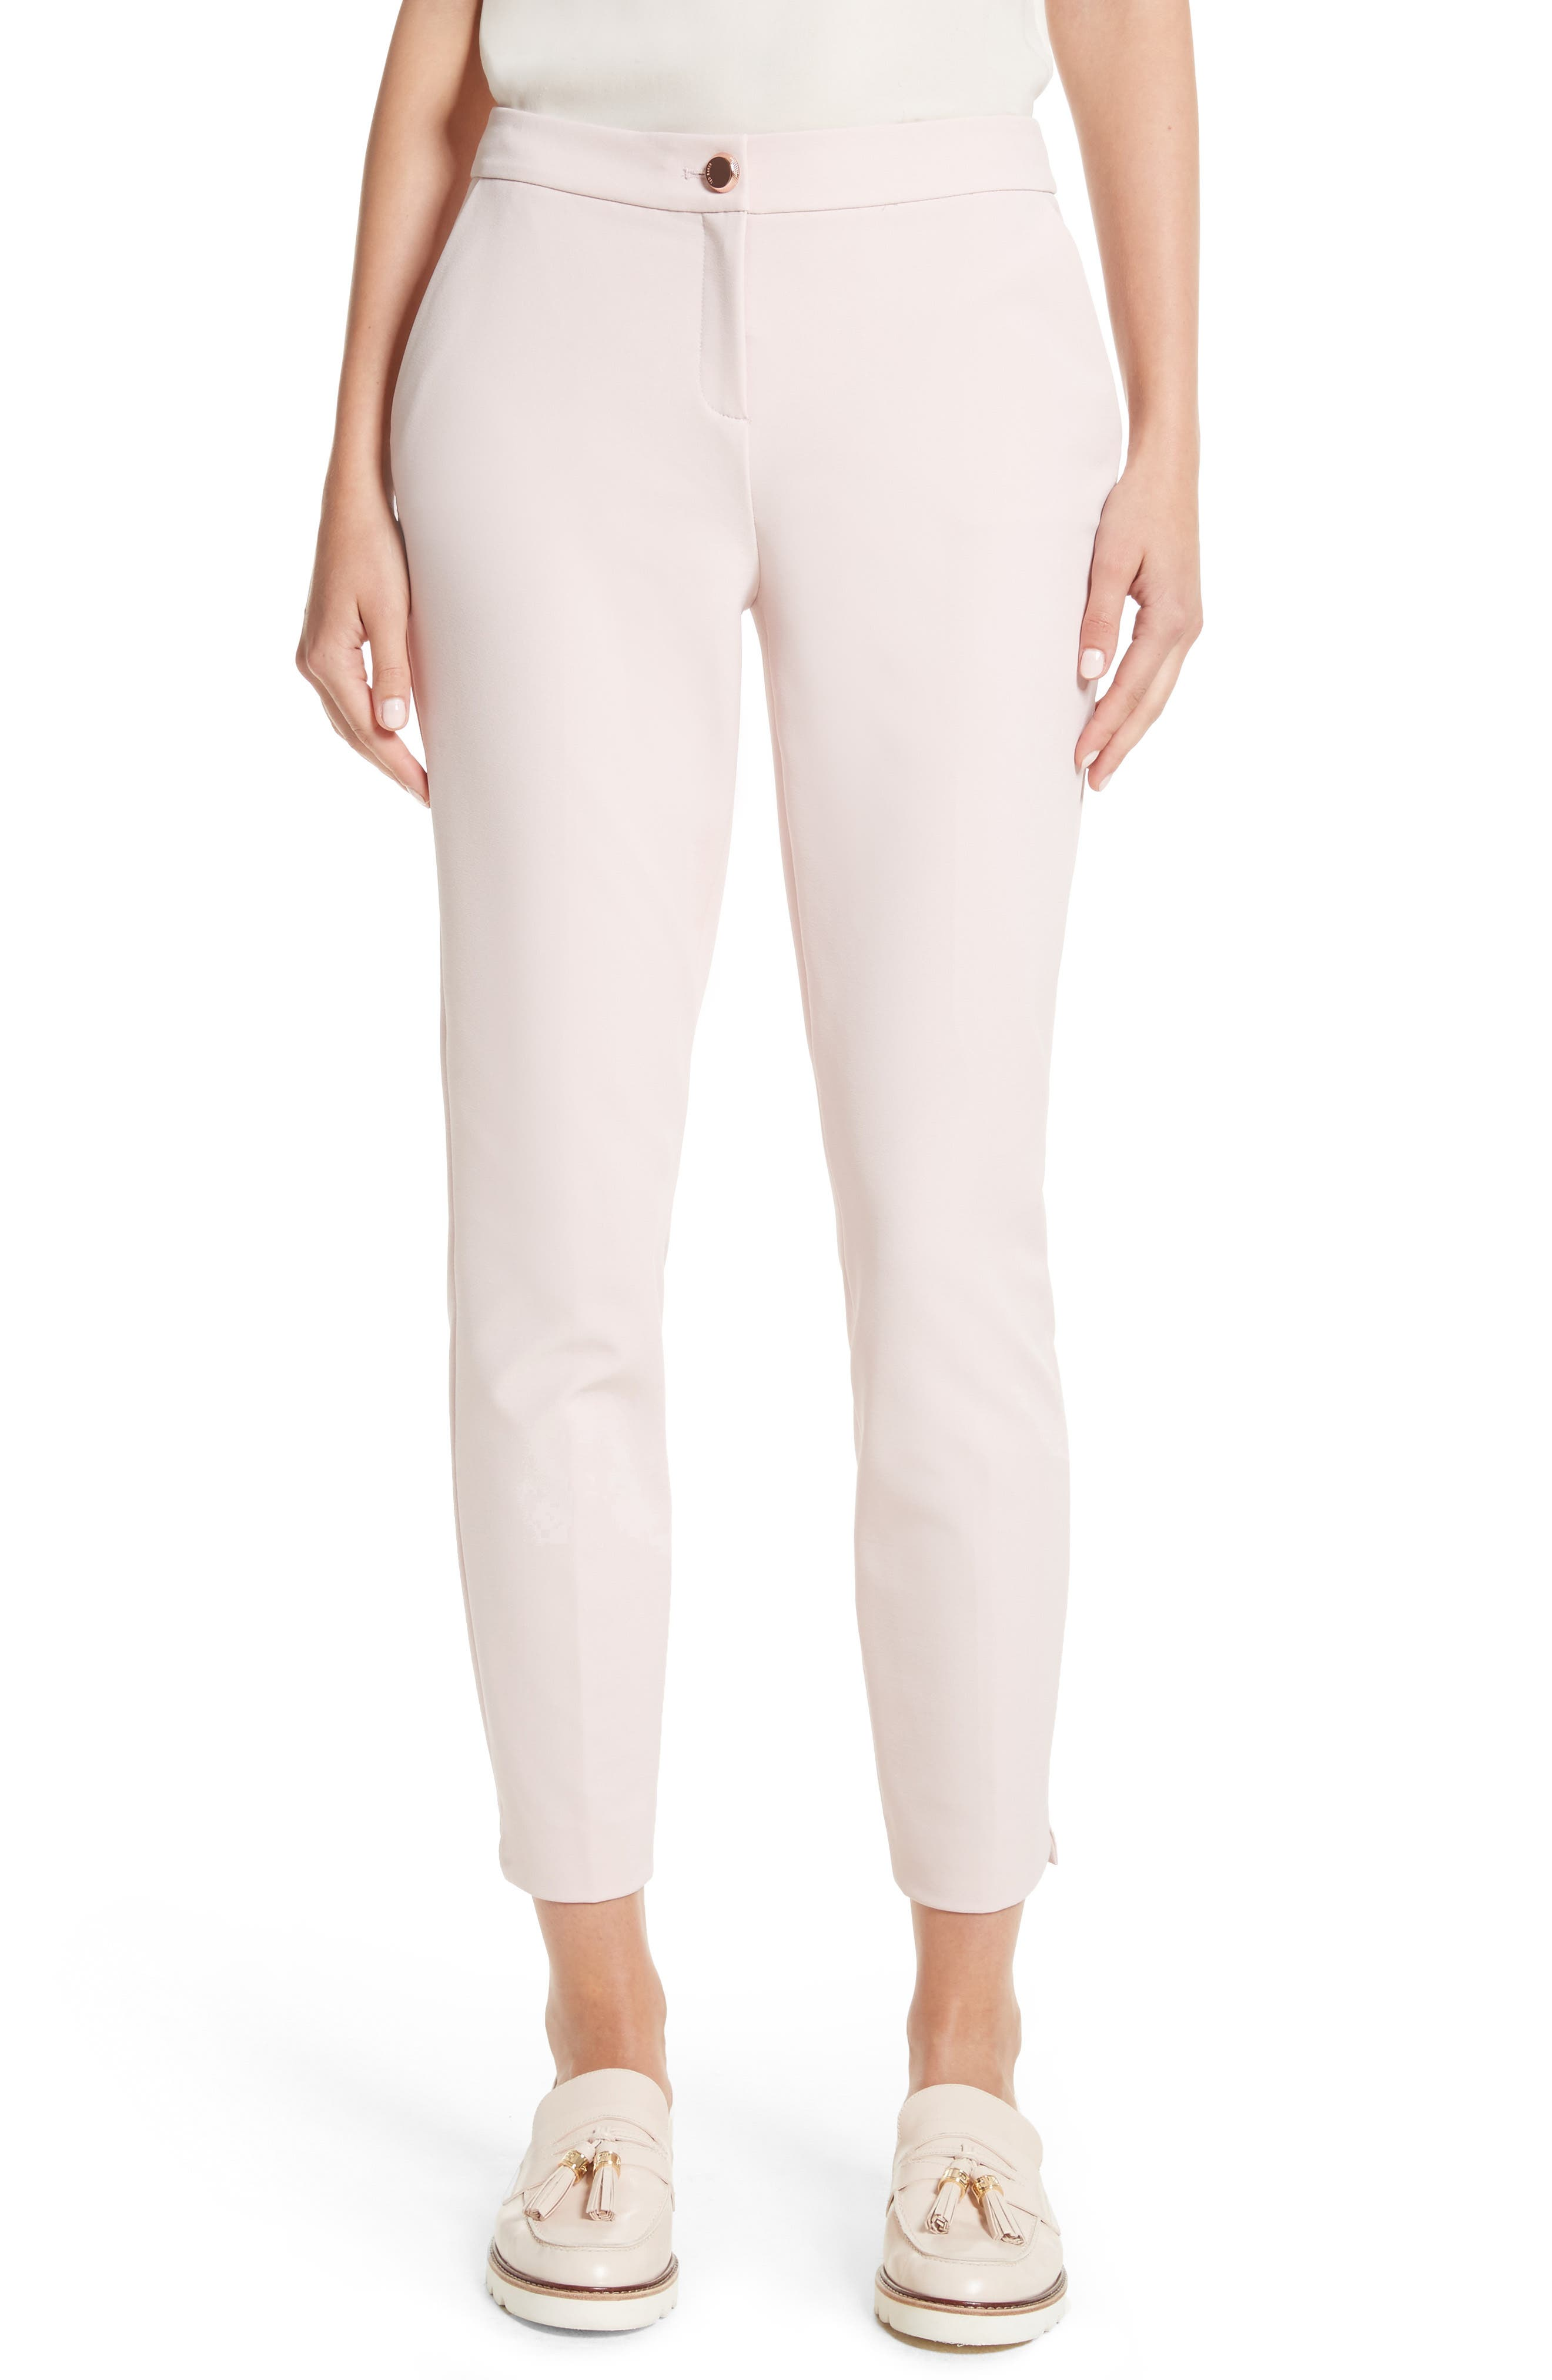 Suria Tailored Ankle Grazer Trousers,                         Main,                         color, Pale Pink